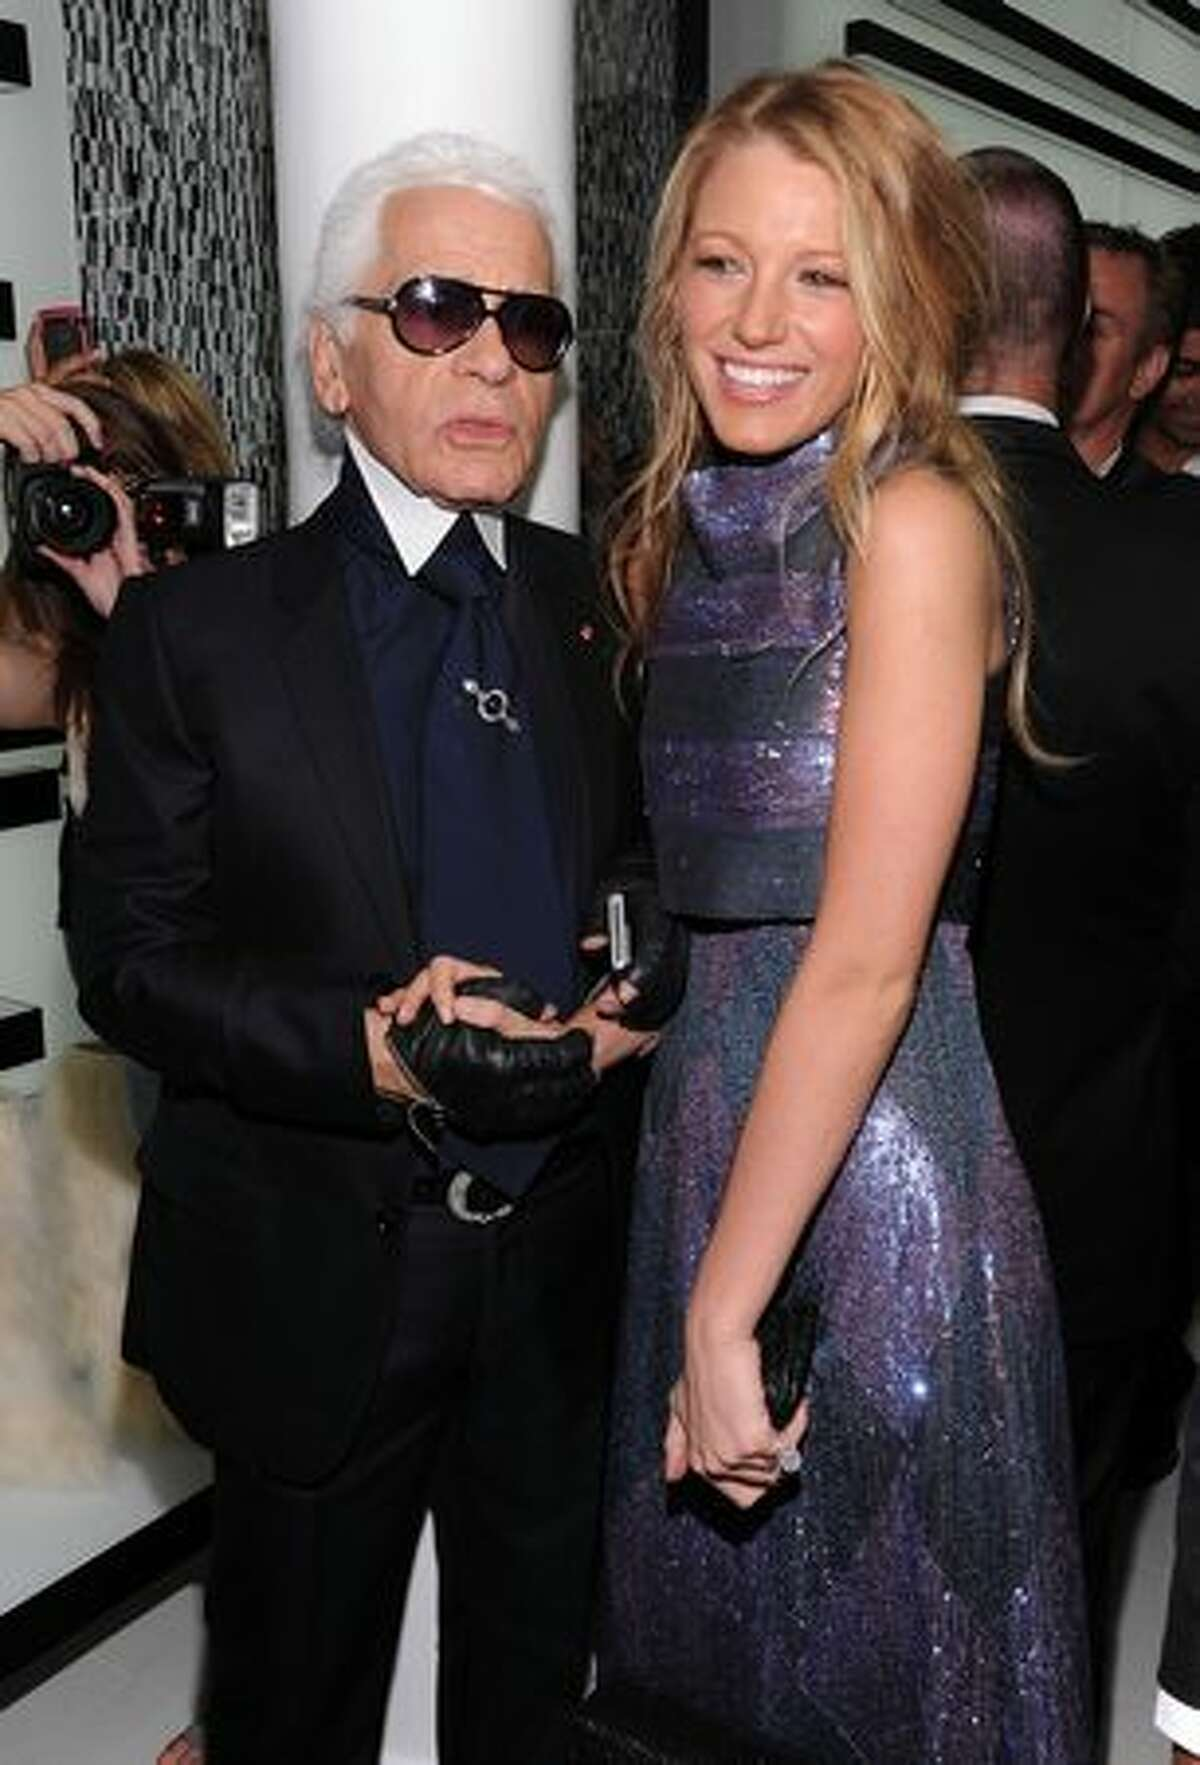 Designer Karl Lagerfeld and actress Blake Lively attend the reopening of the CHANEL SoHo Boutique at the Chanel Boutique Soho in New York City.